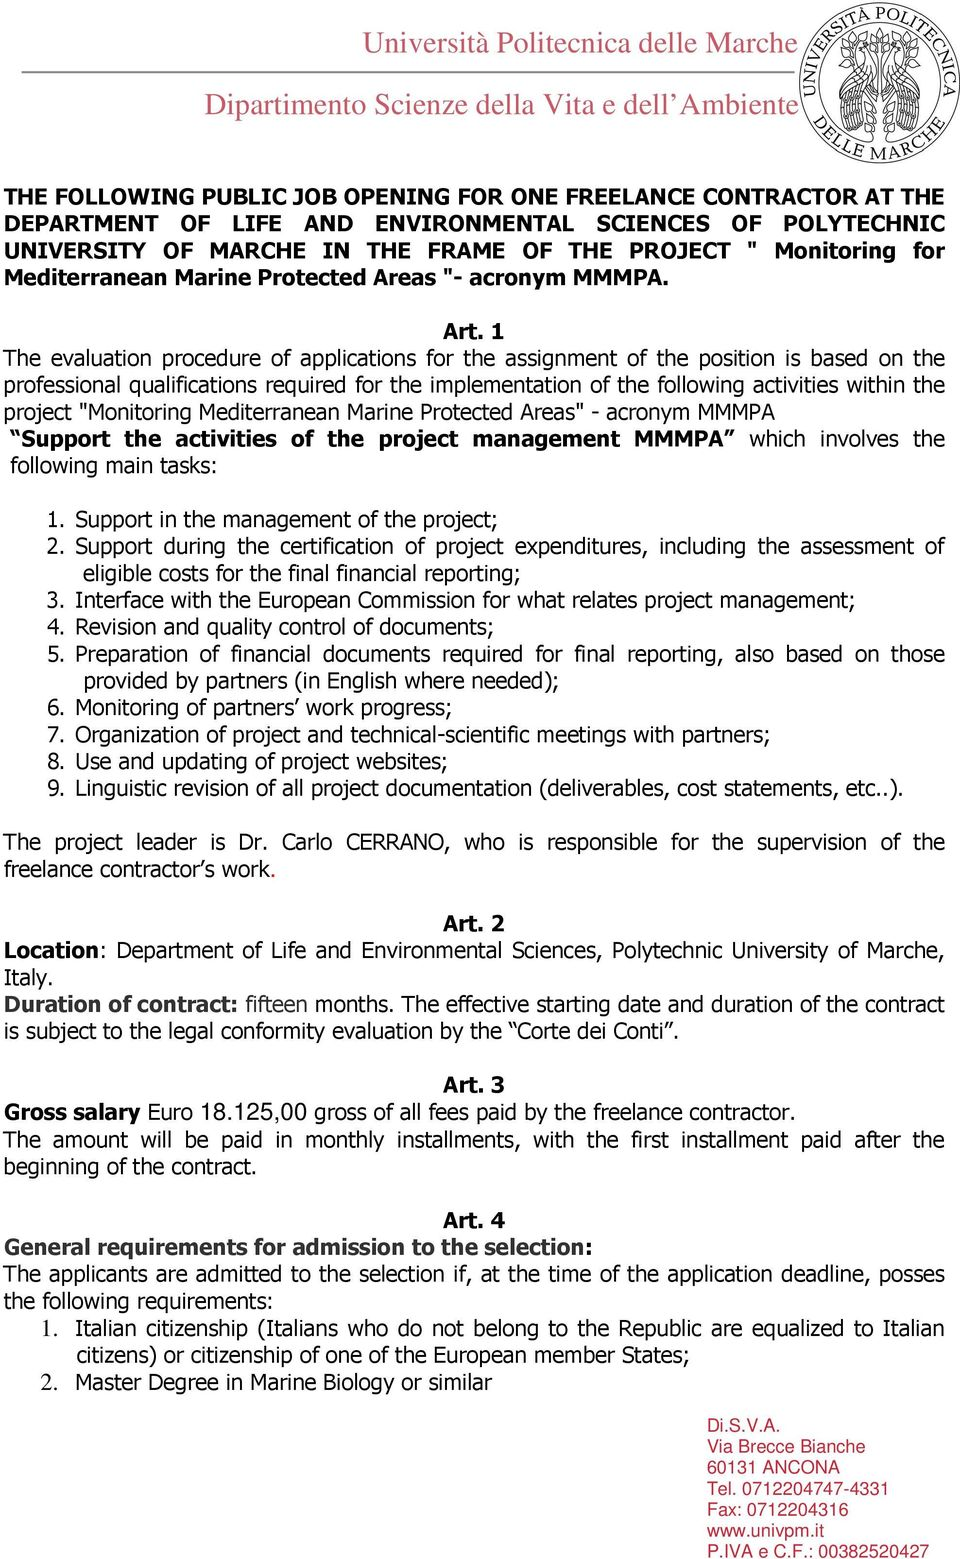 1 The evaluation procedure of applications for the assignment of the position is based on the professional qualifications required for the implementation of the following activities within the